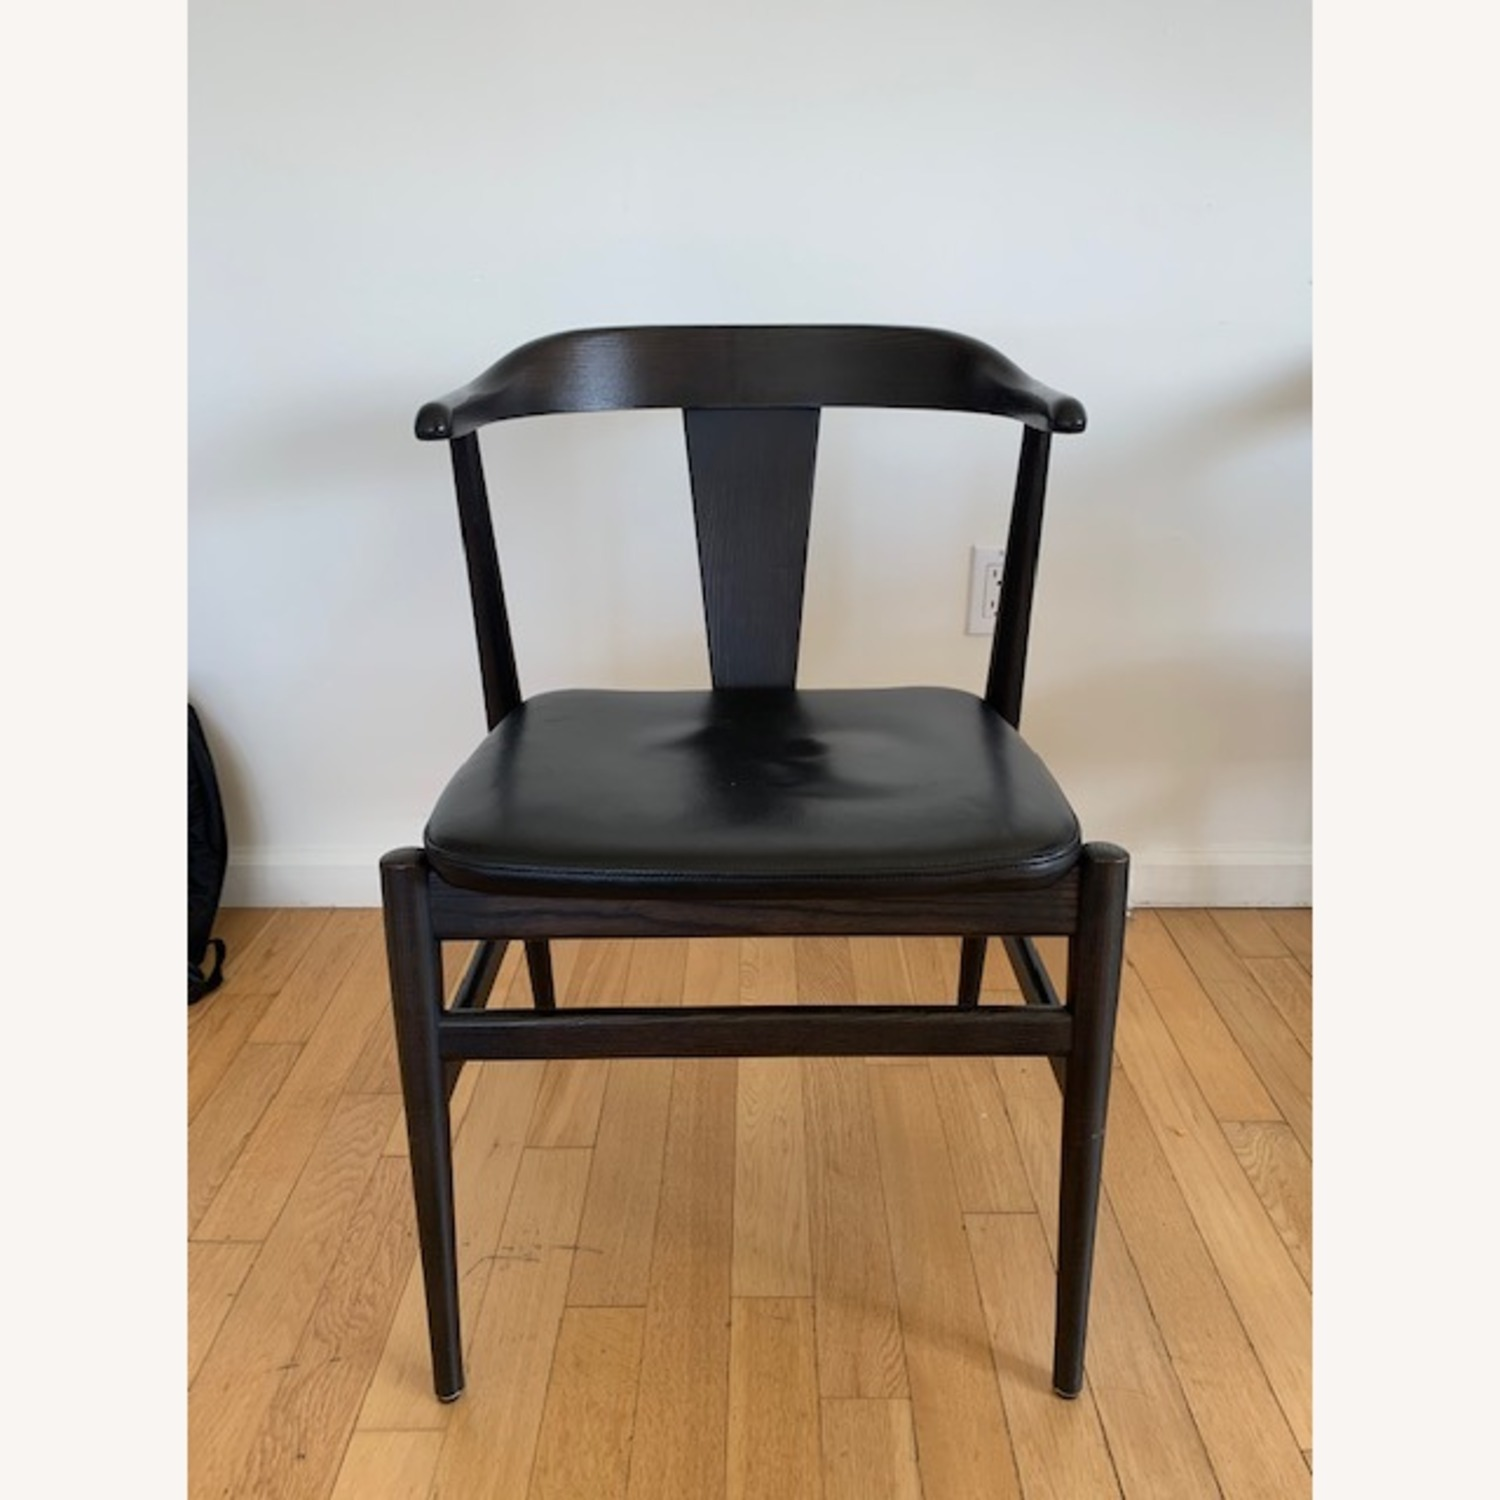 Room and Board Evans Chairs with Leather seats - image-3